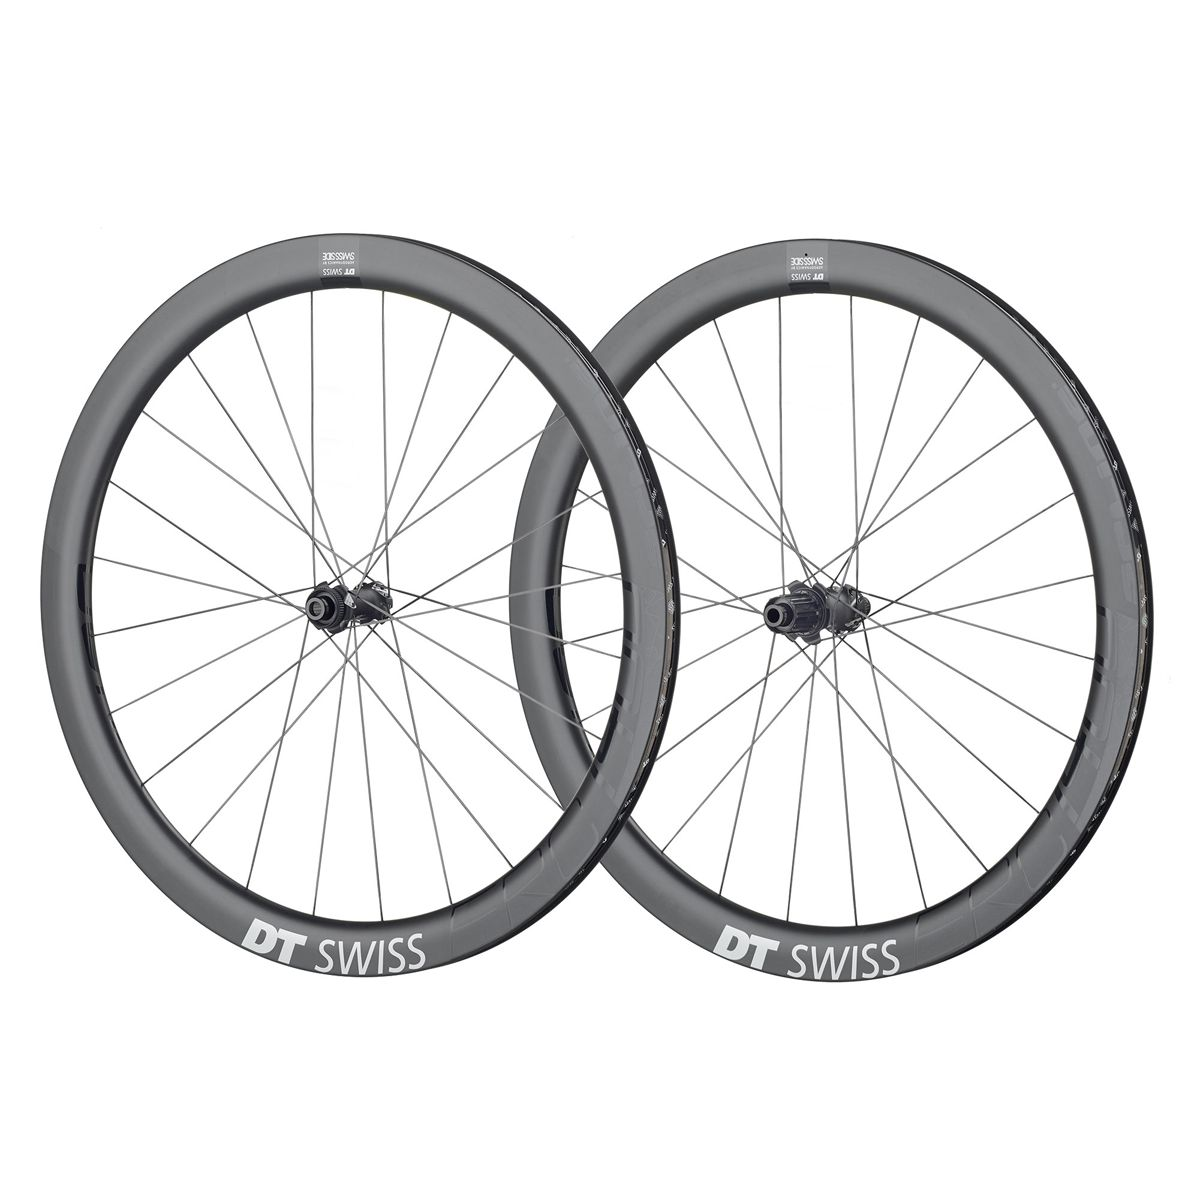 ERC 1400 Spline 47 db road wheels 28